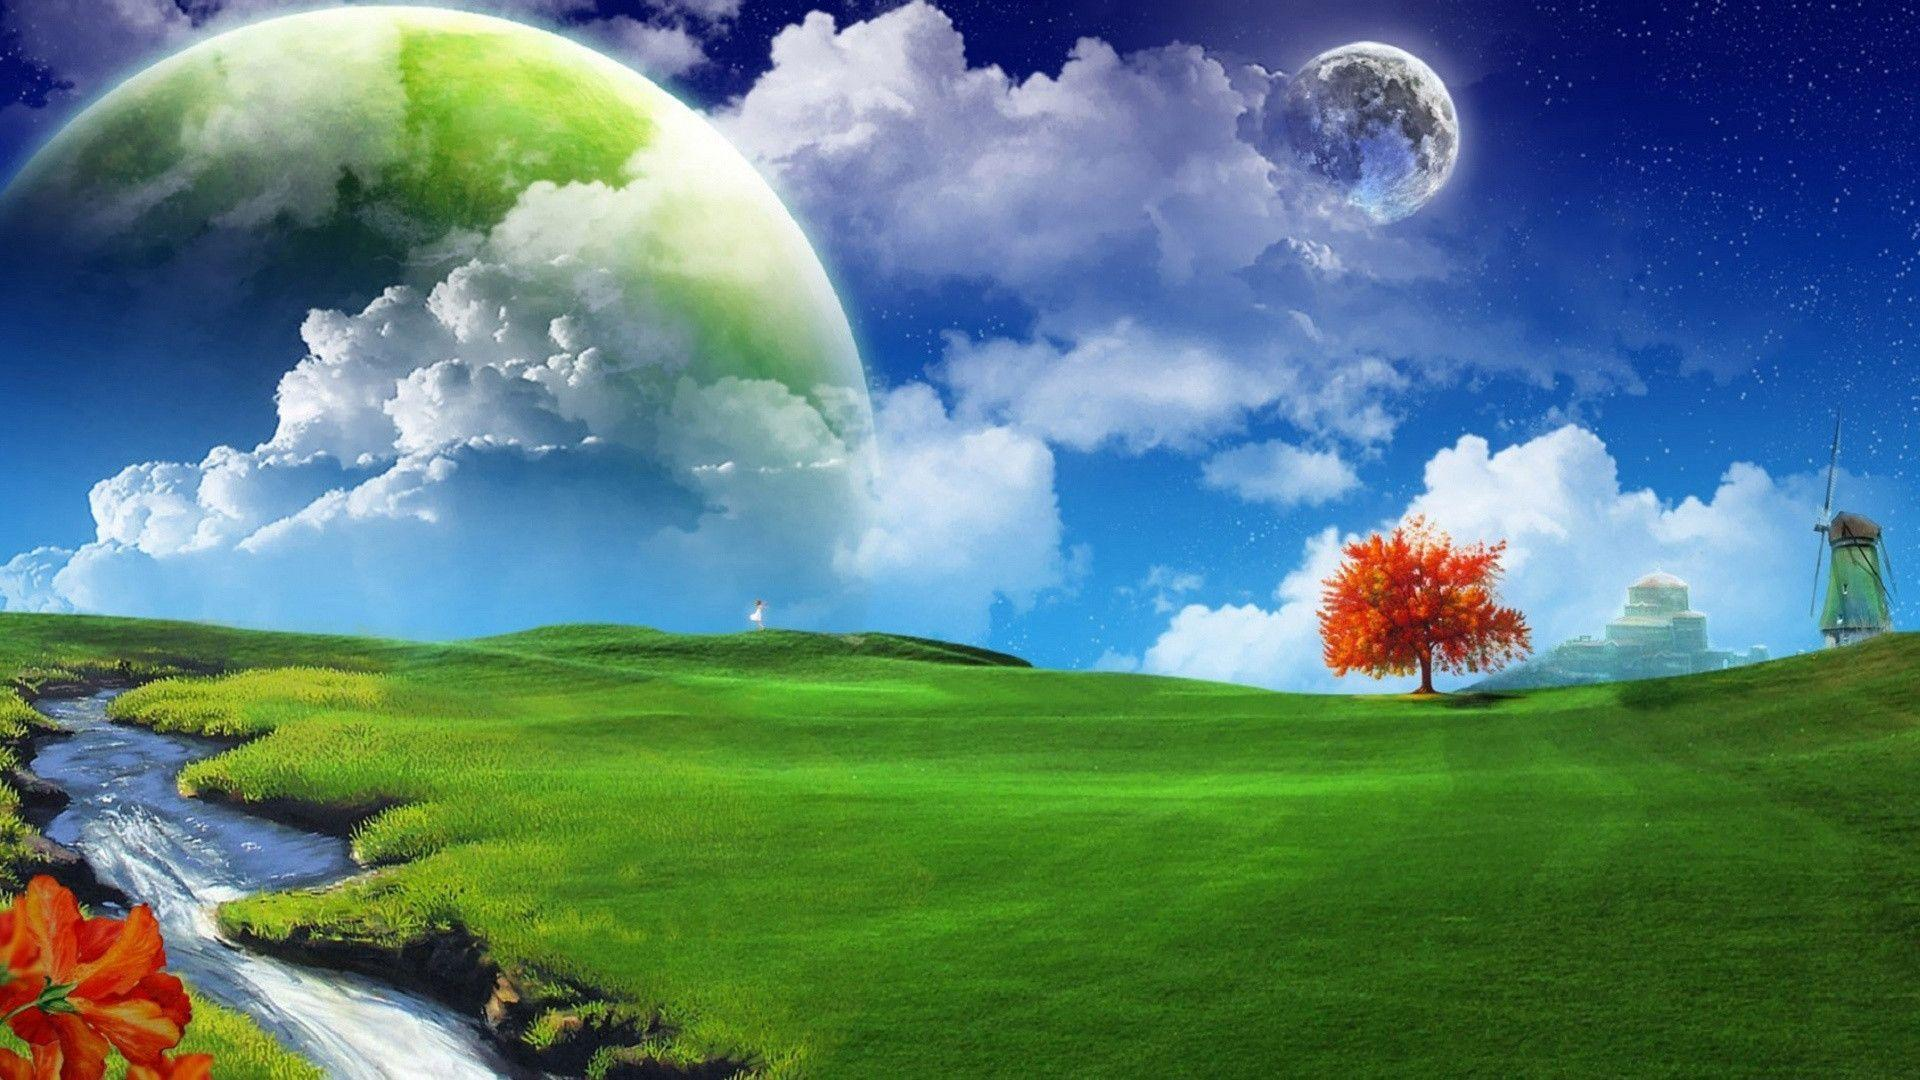 Dreamy Landscape Wallpapers For 1920x1080 Hdtv 1080p 15 416